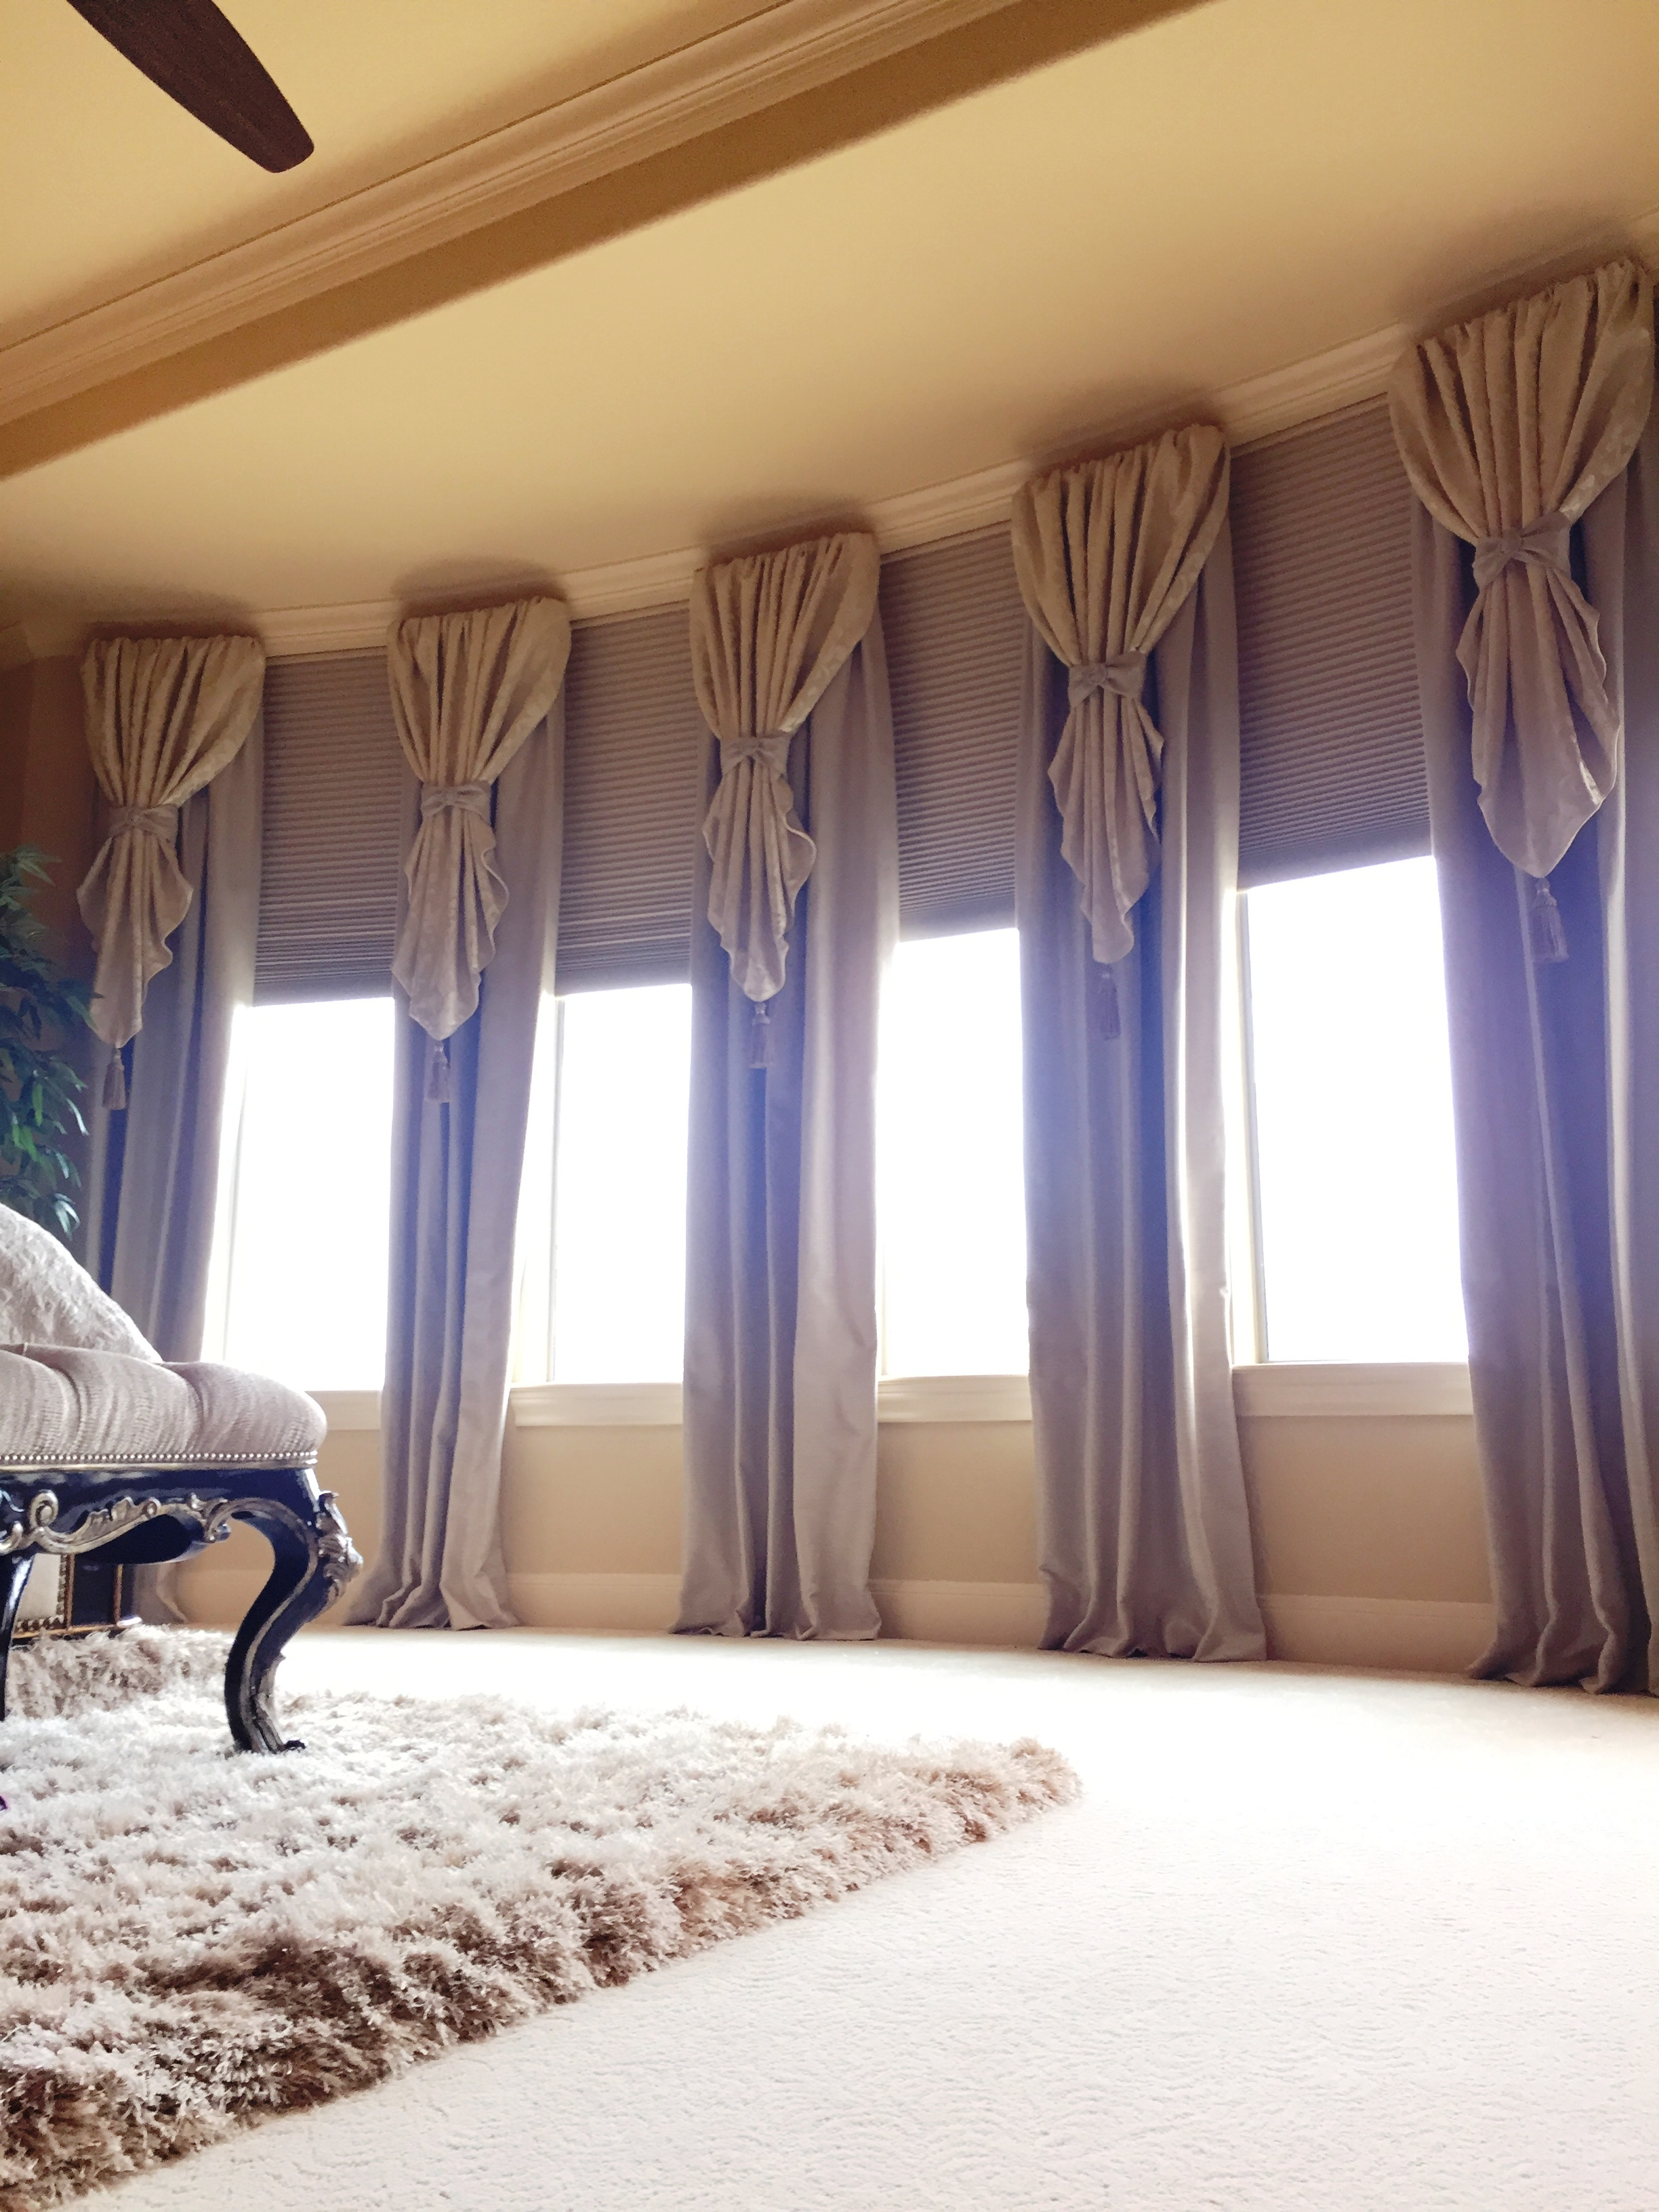 custom-window-treatments-made-to-measure-custom-drapes-professional-drapery-workroom.JPG